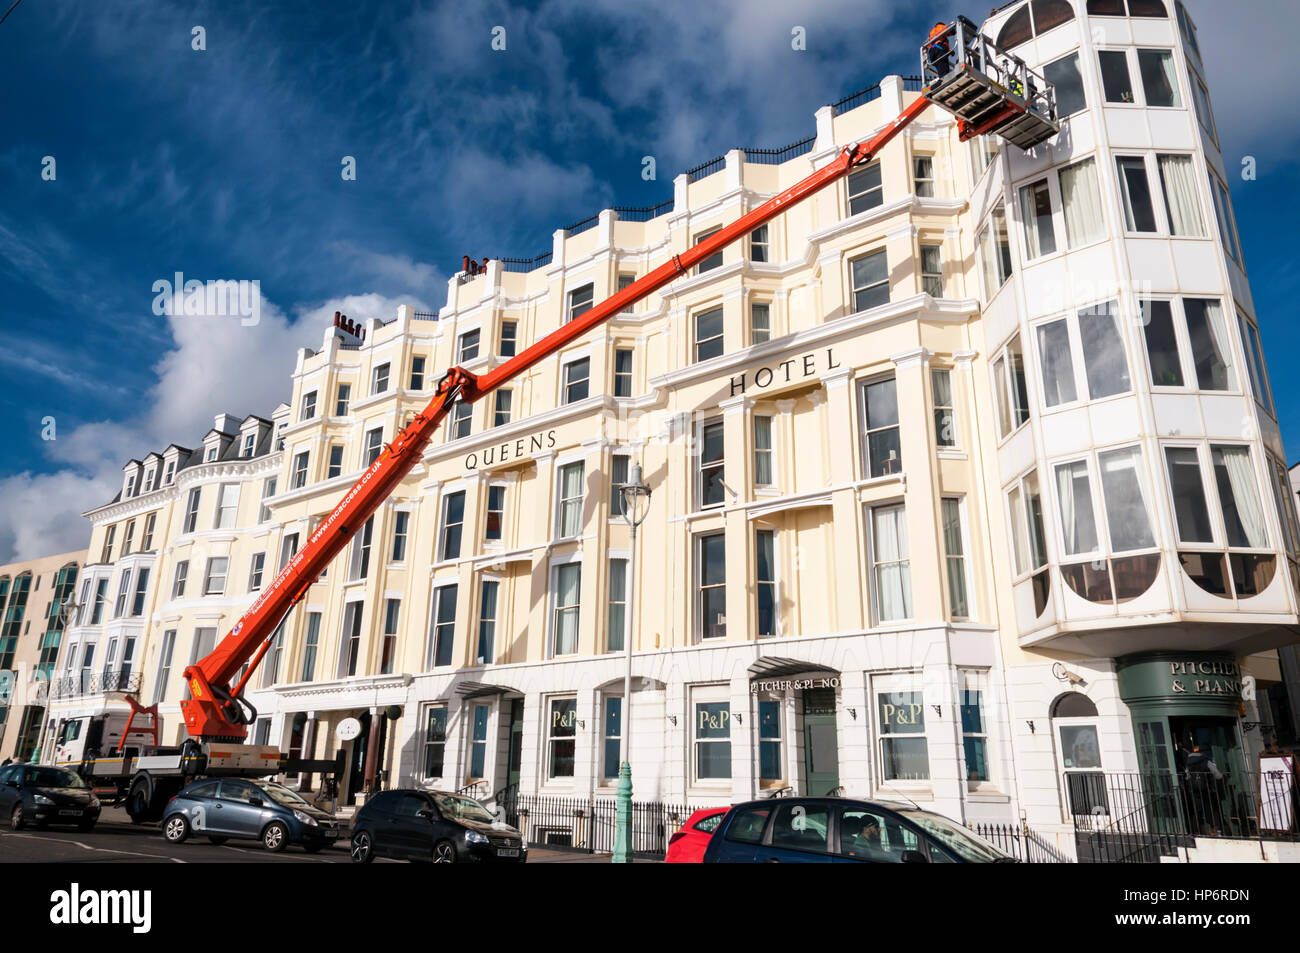 A Palfinger 480 cherry picker being used to give access for maintenance work, possibly window cleaning, on Queens - Stock Image